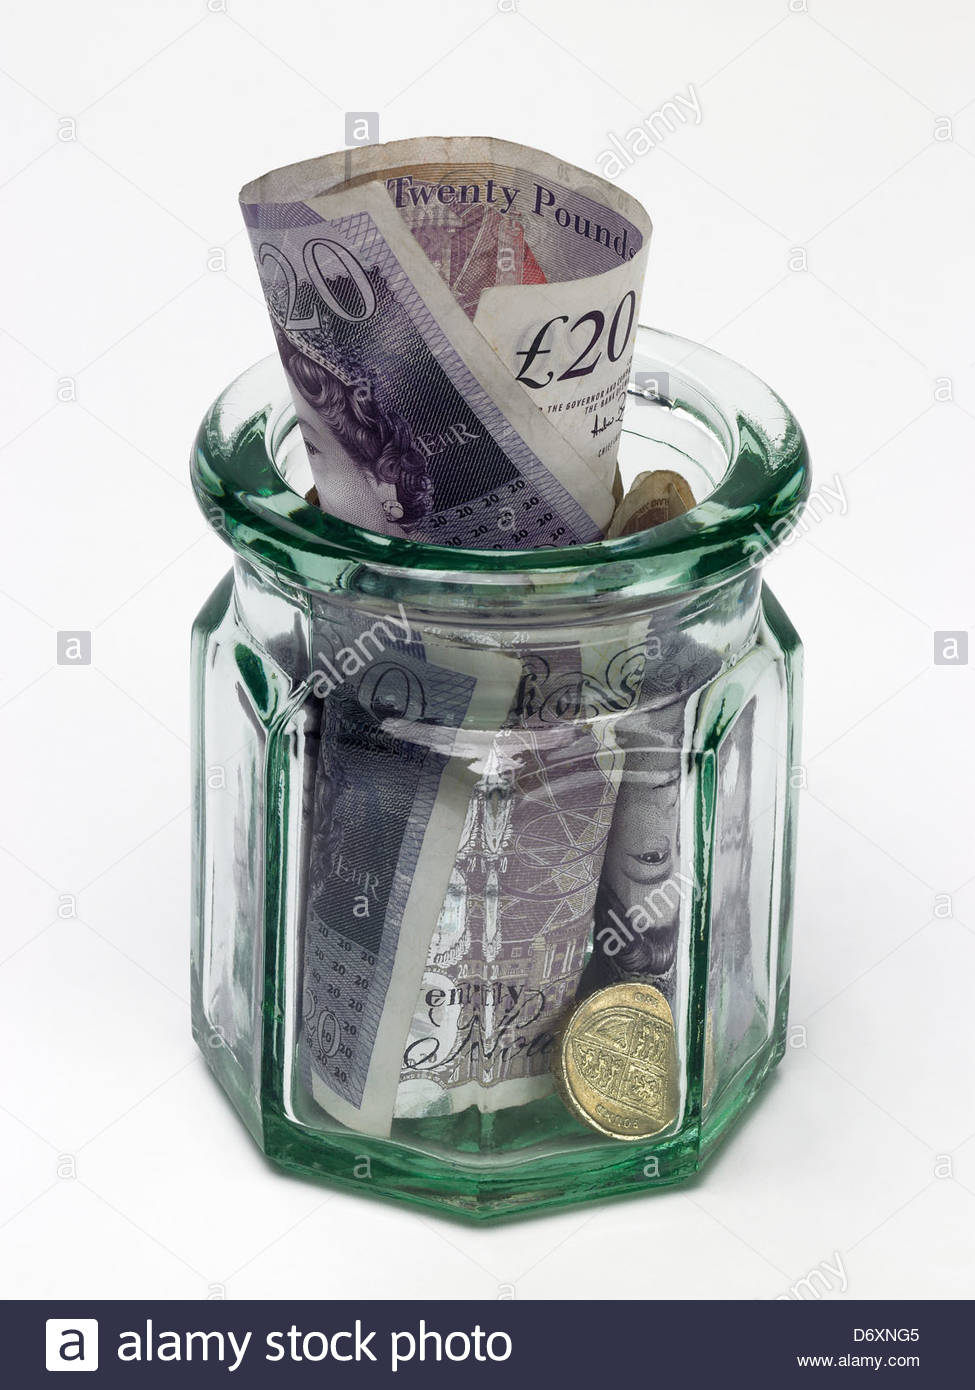 Jam jar with 20 pound notes and one pound coin in side jar - Stock Image